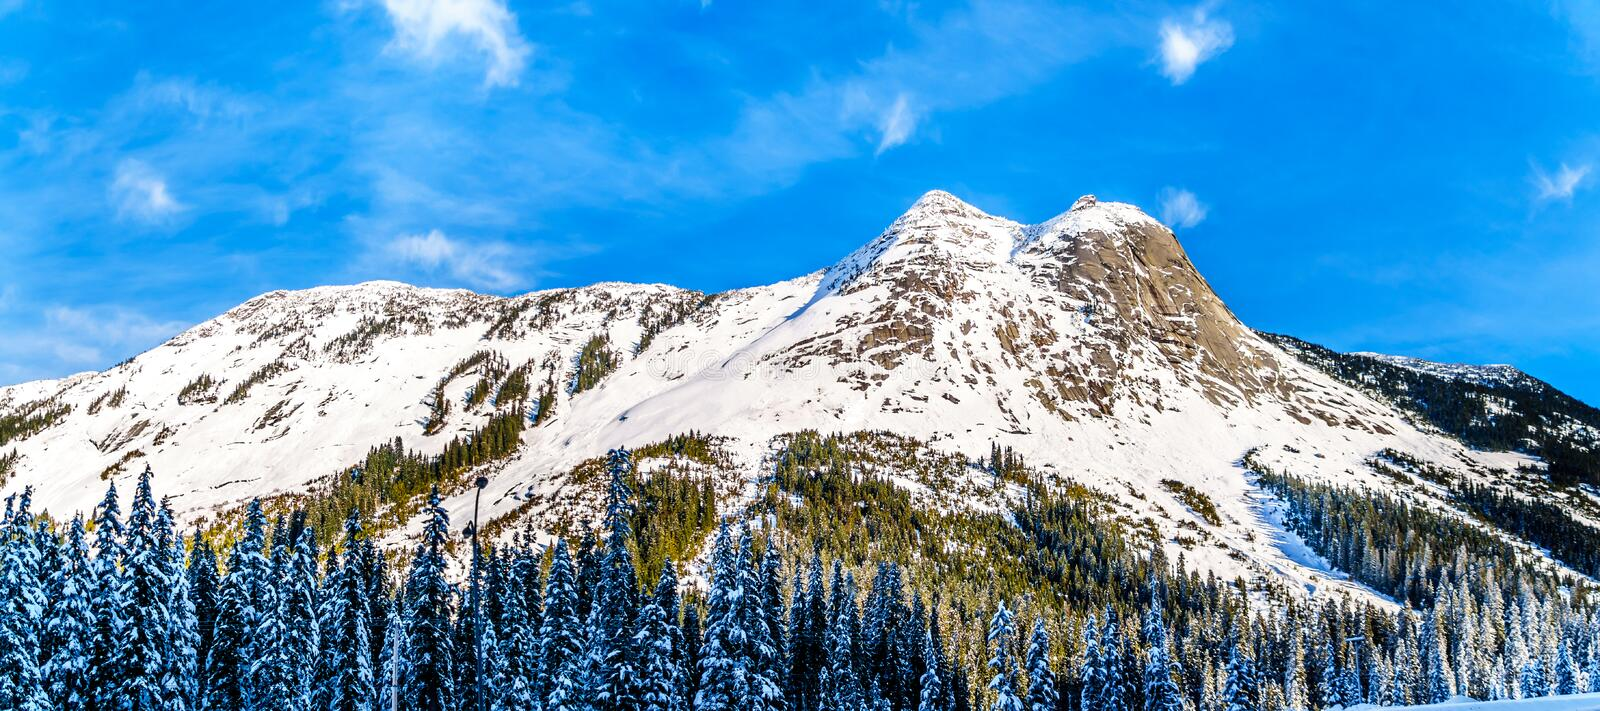 The snow covered granite rock face of Yak Peak in the Zopkios Ridge of the Cascade Mountain Range near the Coquihalla Summit. Seen from Highway 5, the stock image